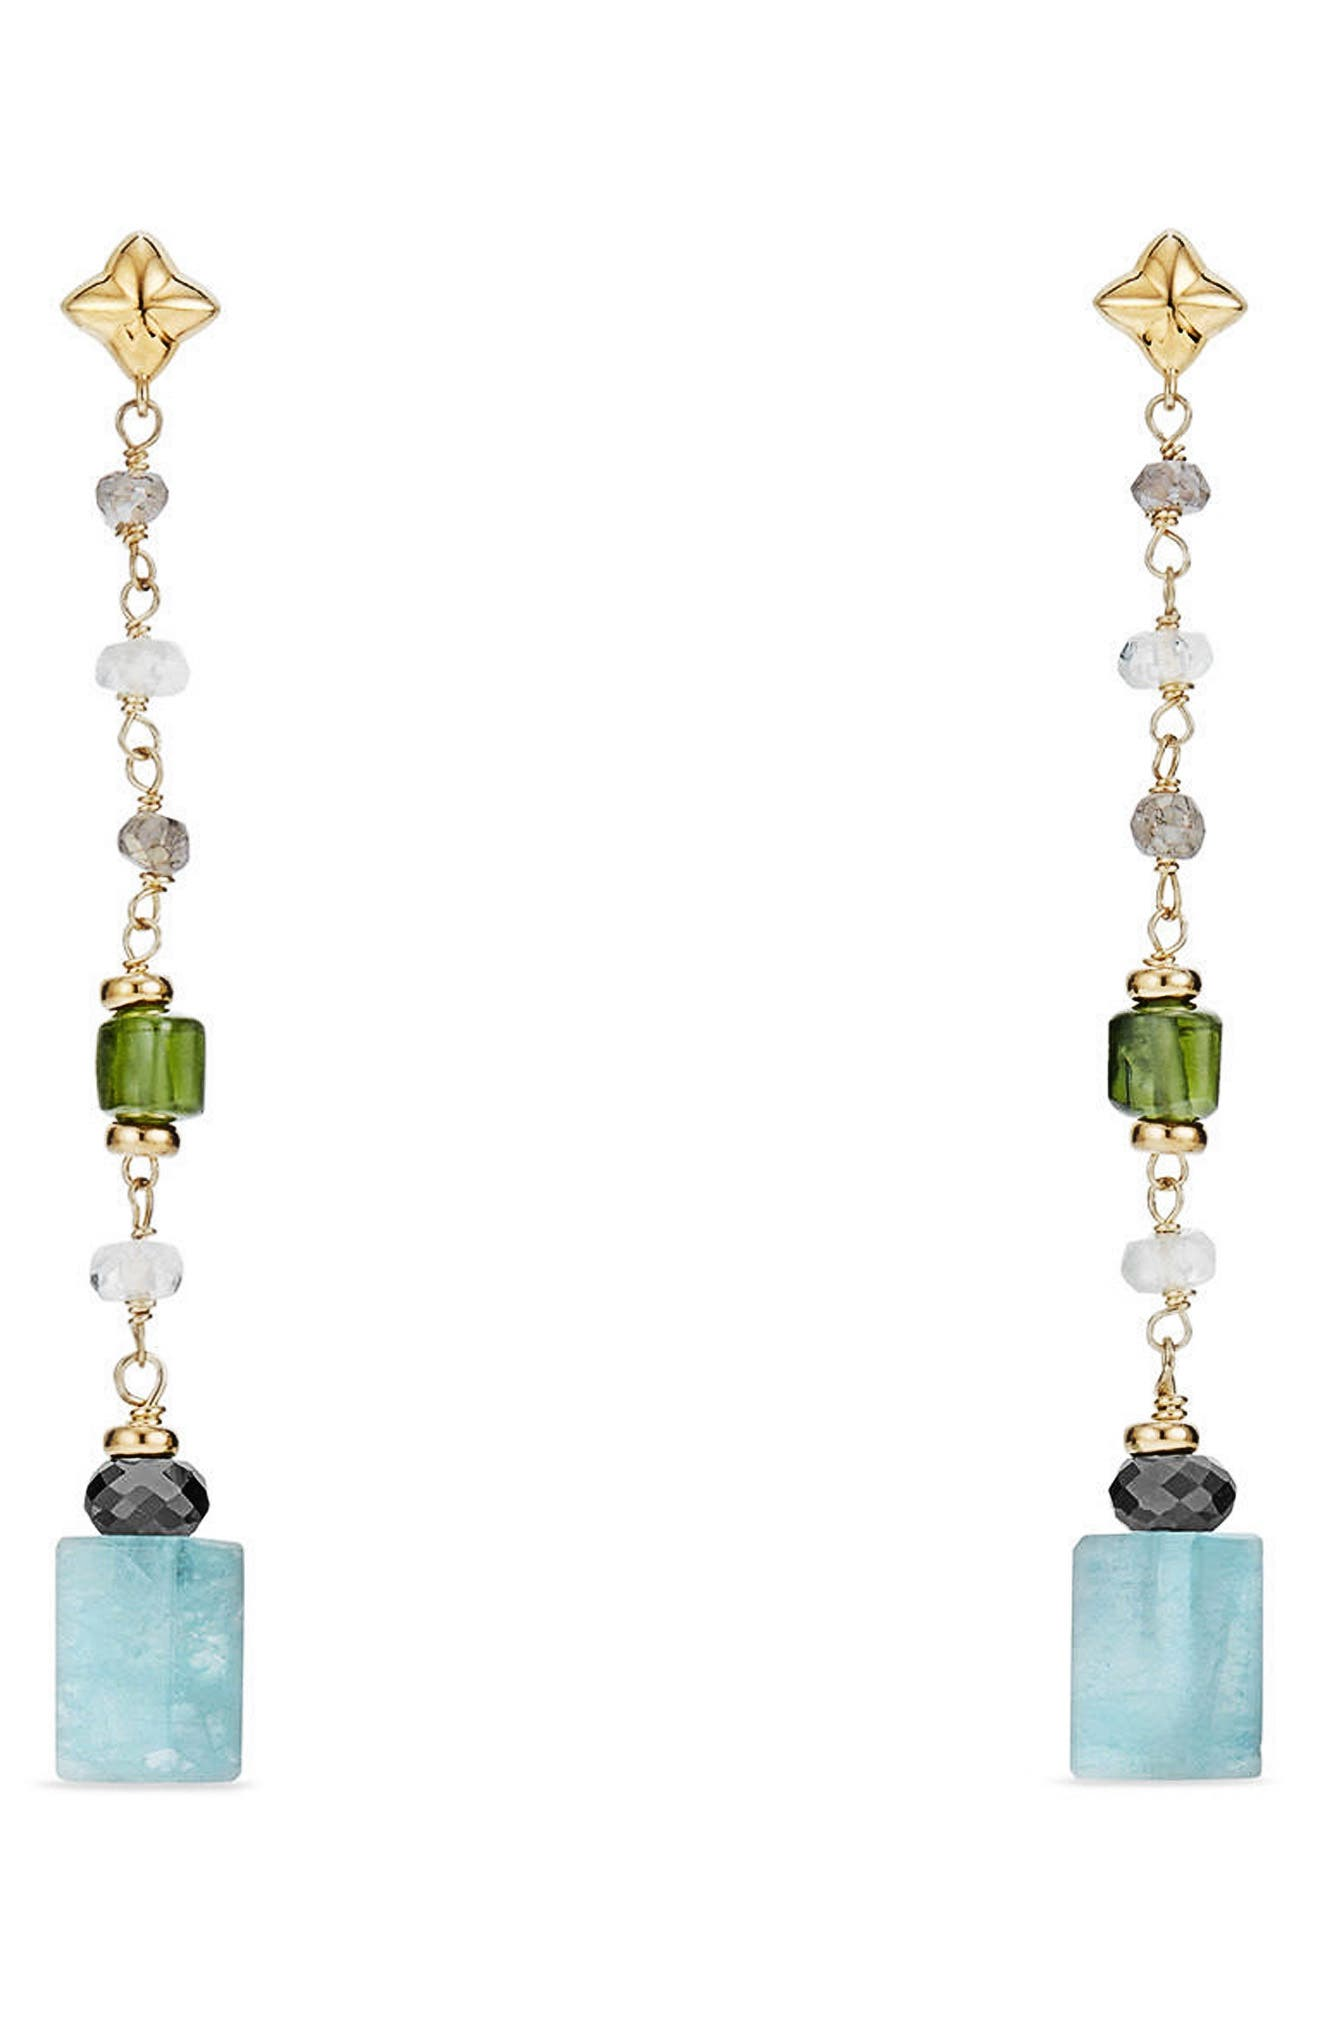 Bead & Chain Earrings with Semiprecious Stones,                         Main,                         color, 440